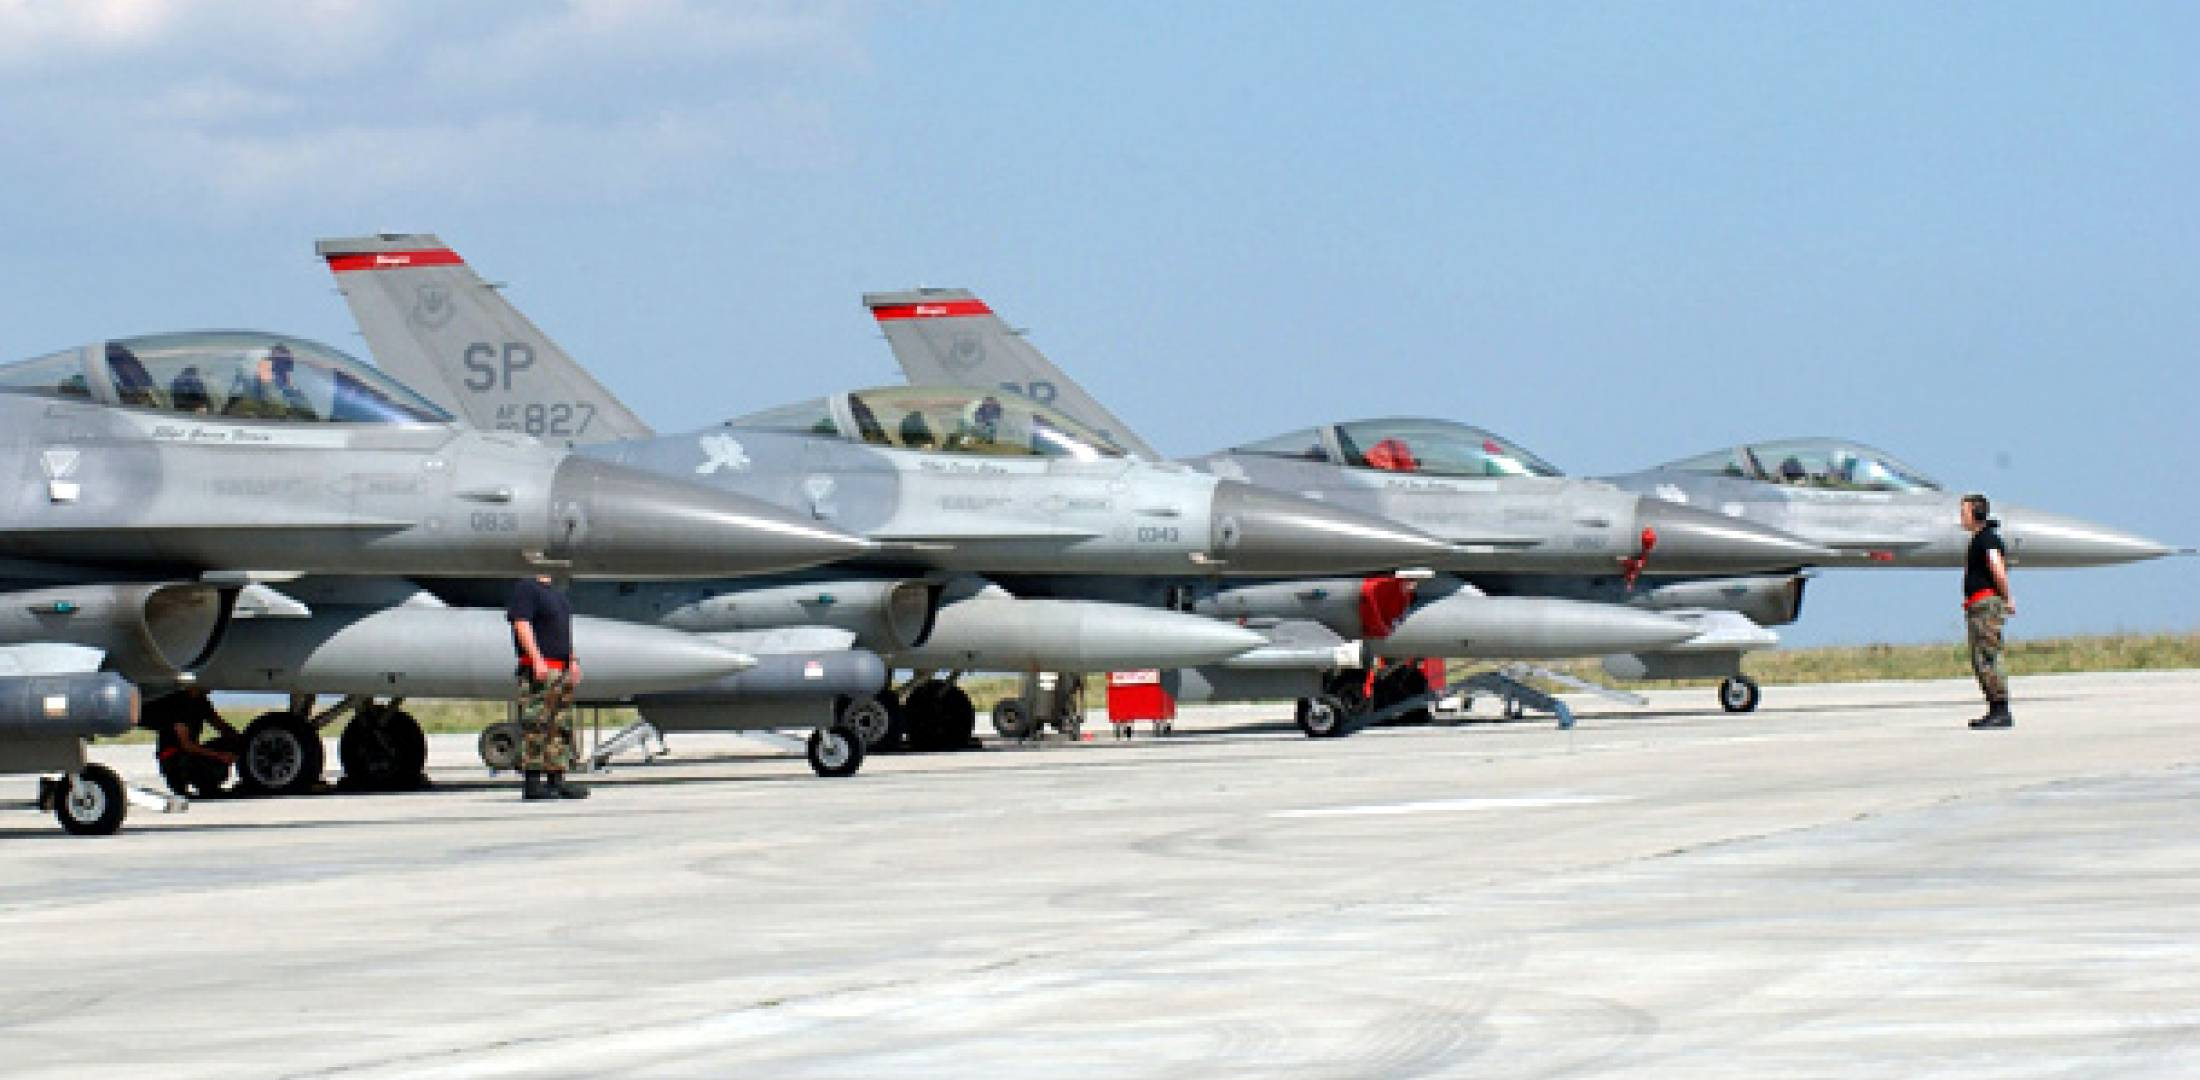 Romania is no stranger to the F-16, having hosted U.S. Air Force aircraft dur...